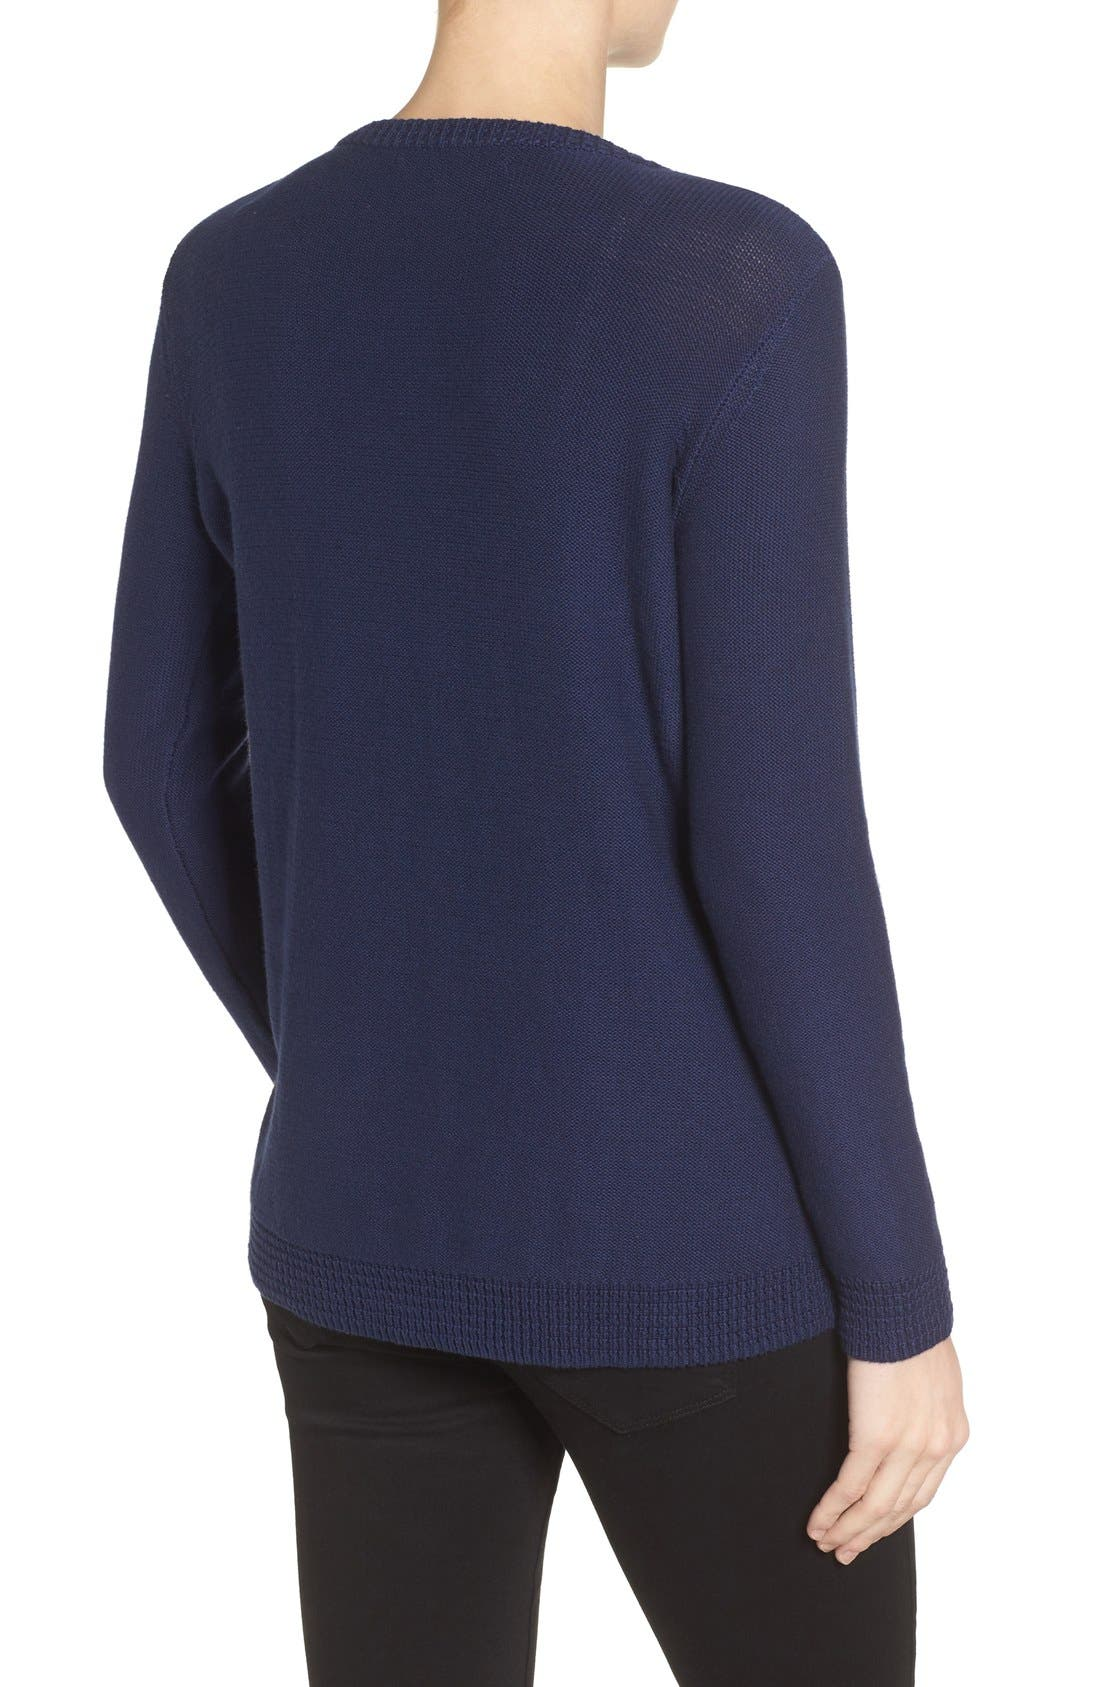 Wiley Maternity/Nursing Sweatshirt,                             Alternate thumbnail 2, color,                             Navy